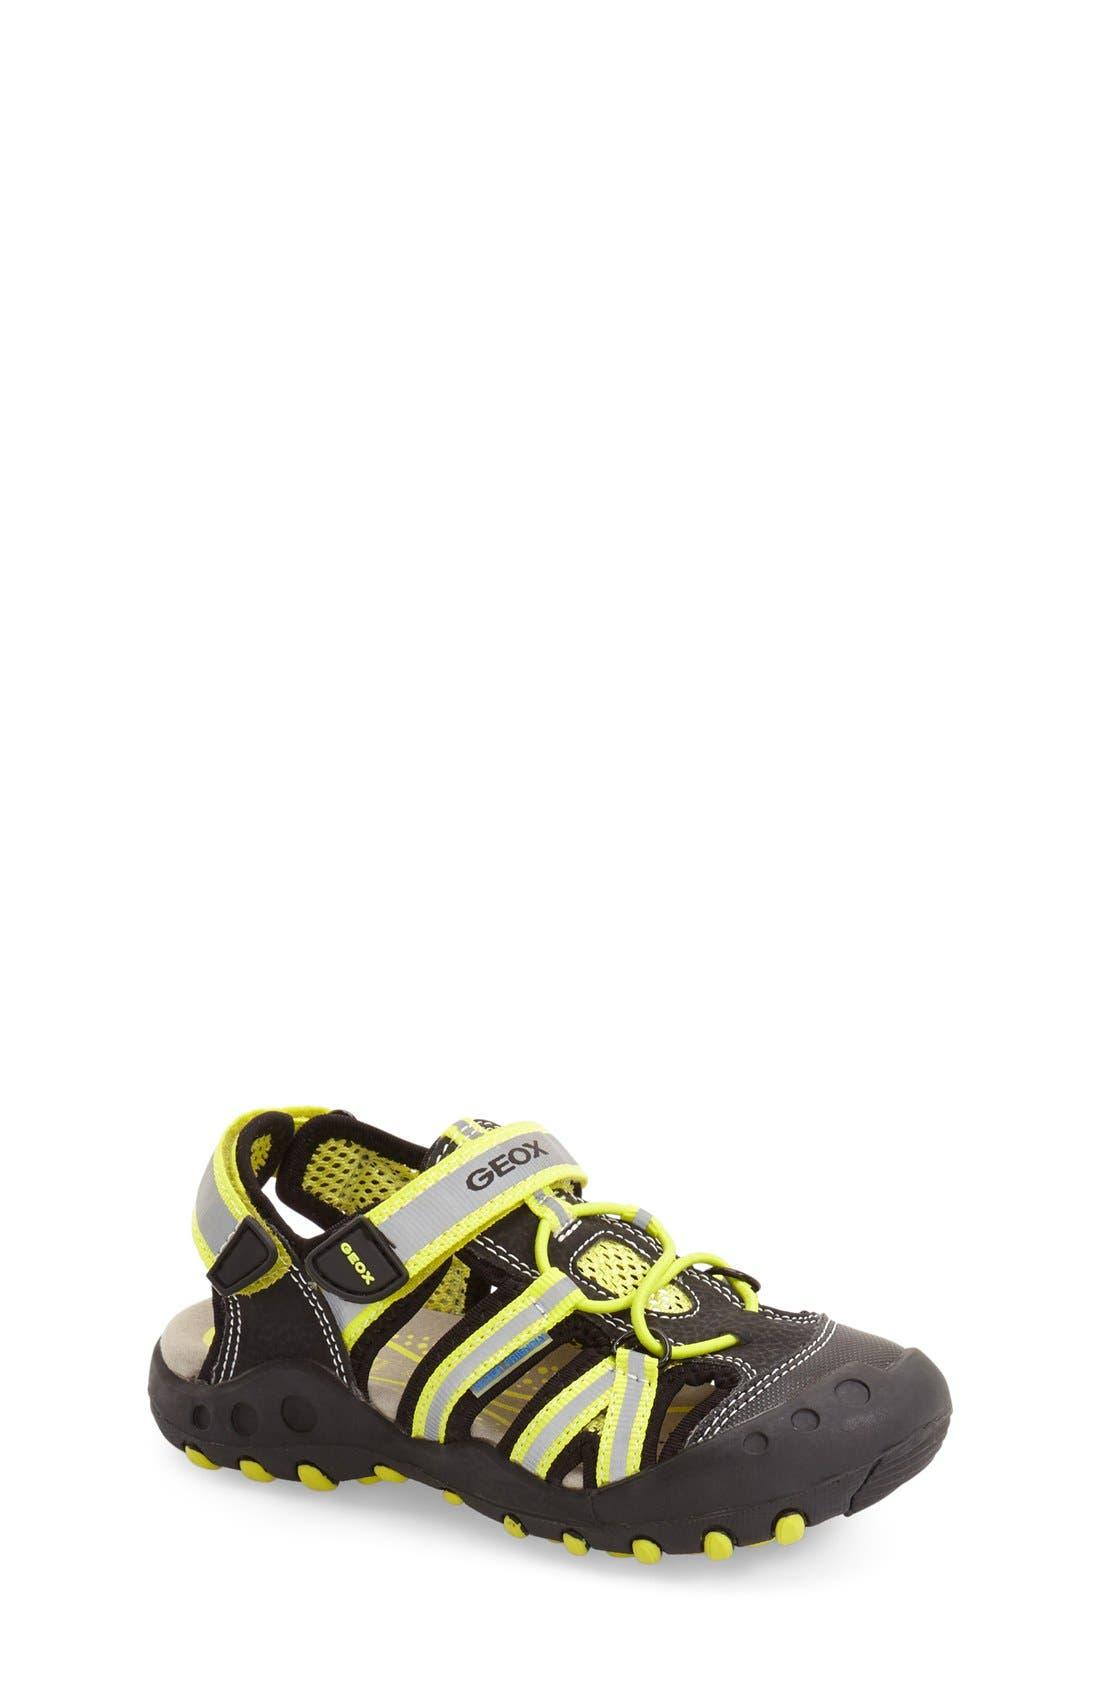 Alternate Image 1 Selected - Geox 'Kyle' Sandal (Toddler, Little Kid & Big Kid)